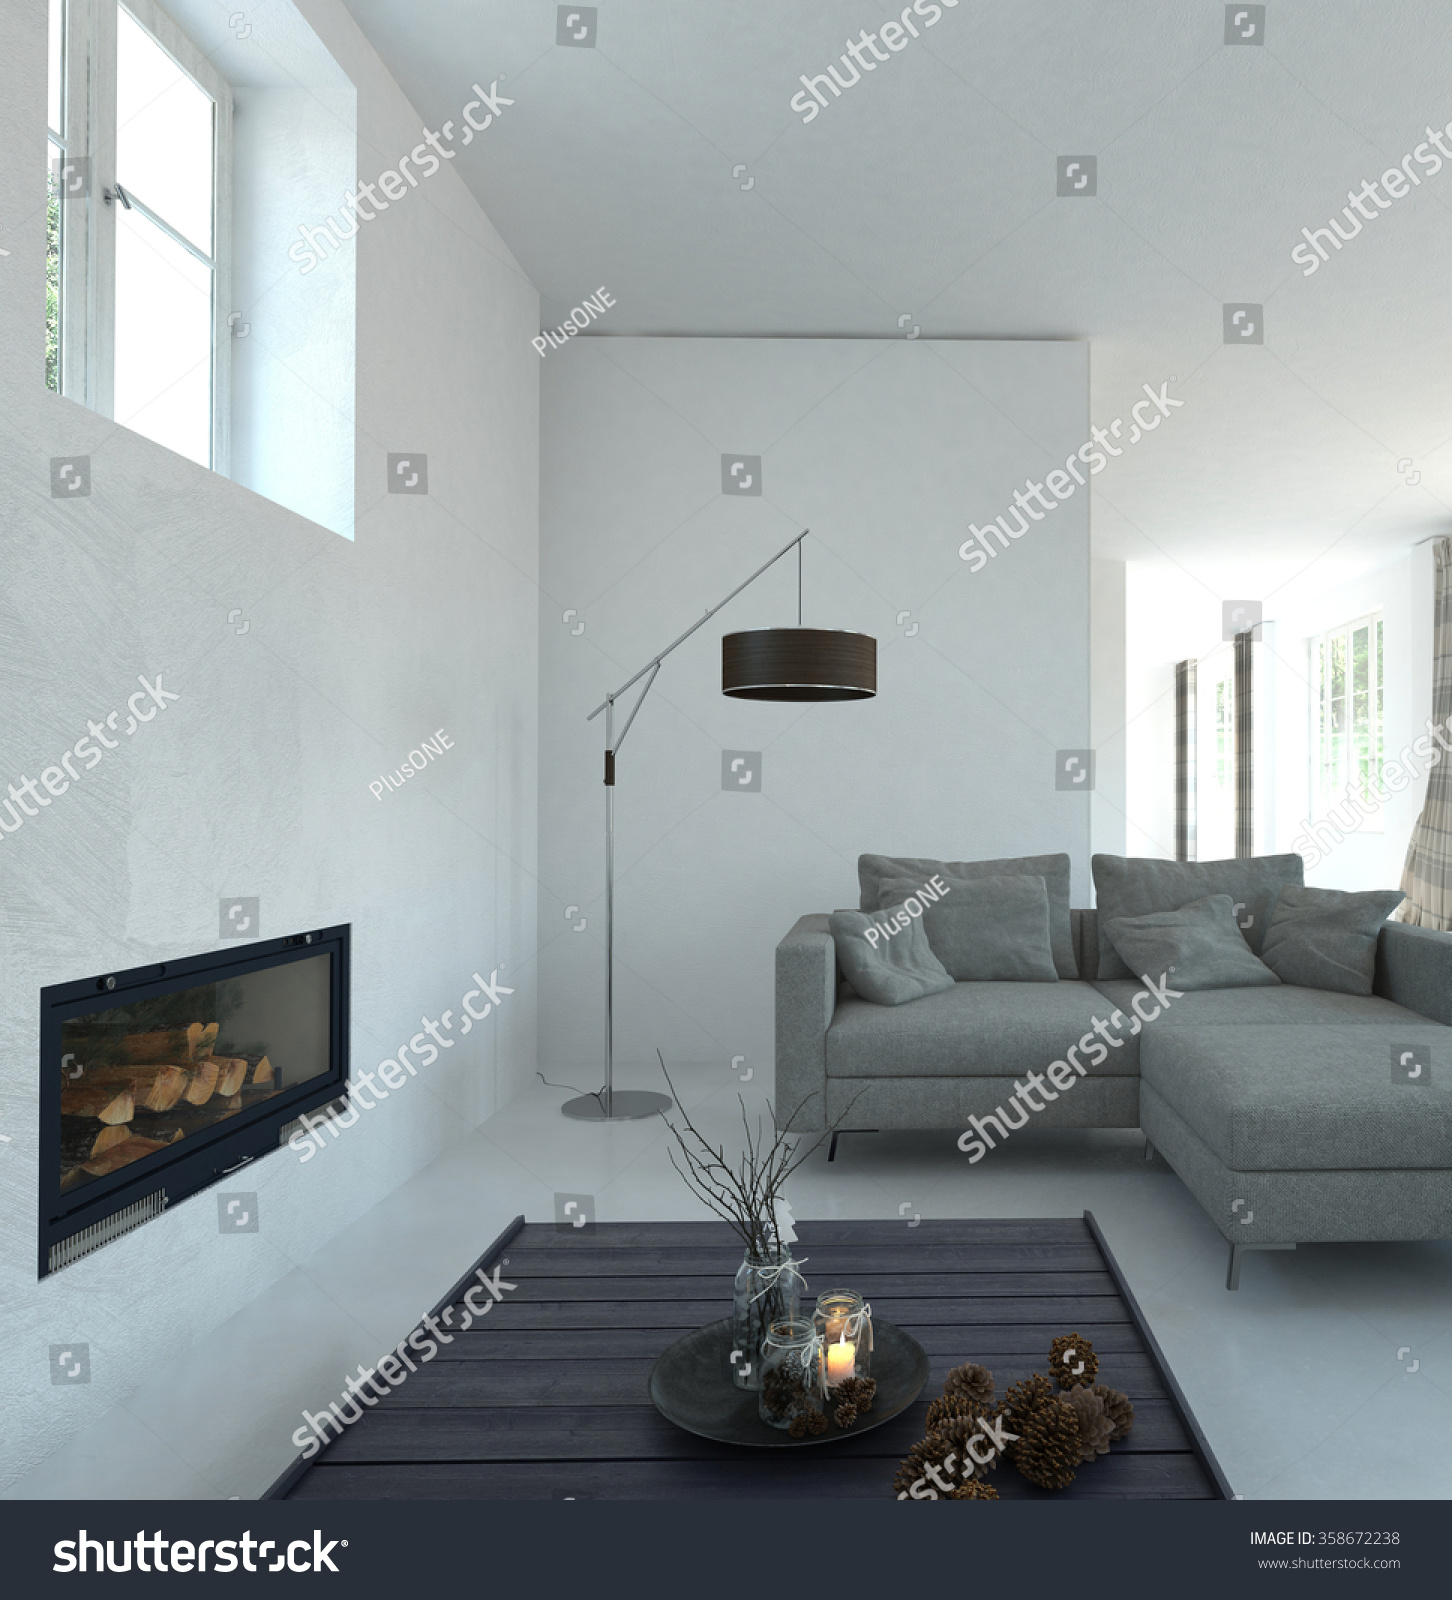 Home Interior of Modern Living Room with White Walls Gray Sofa Fireplace and Tasteful Decor Accents Contemporary Floor Lamp in Spacious Living Room 3D Rendering